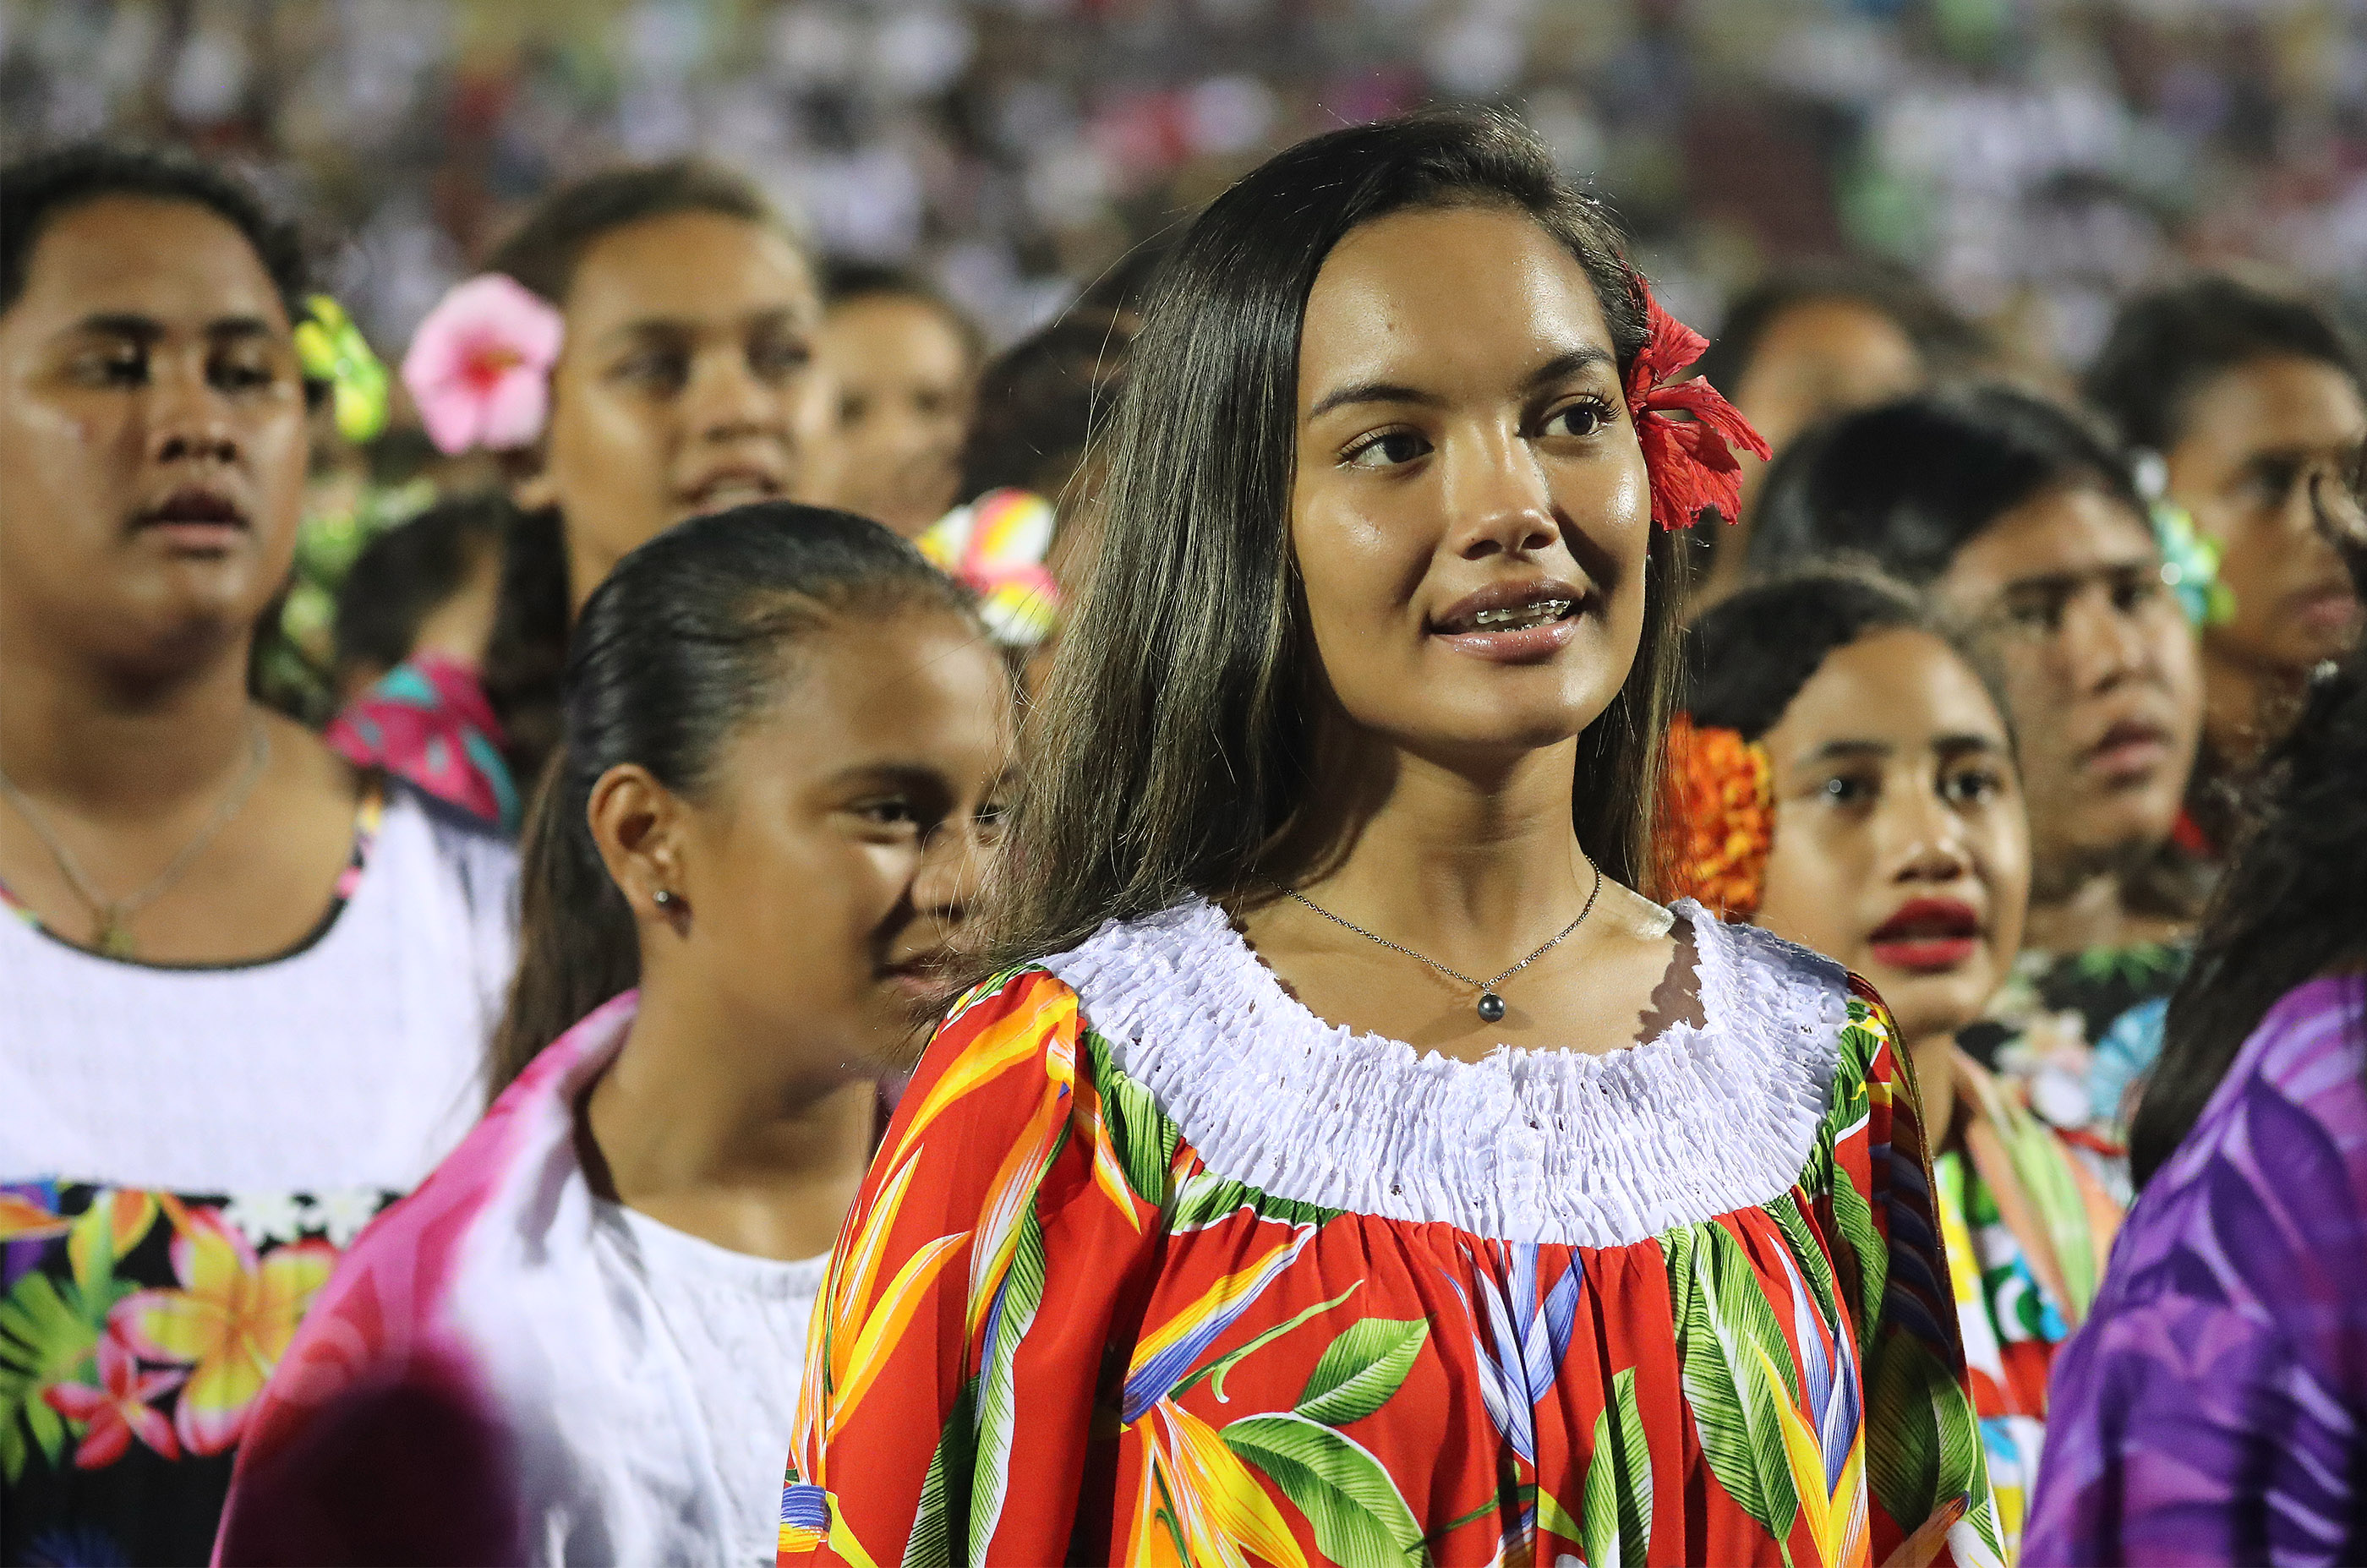 Performers sing during a Tahiti cultural program in Papeete, Tahiti, on May 24, 2019.